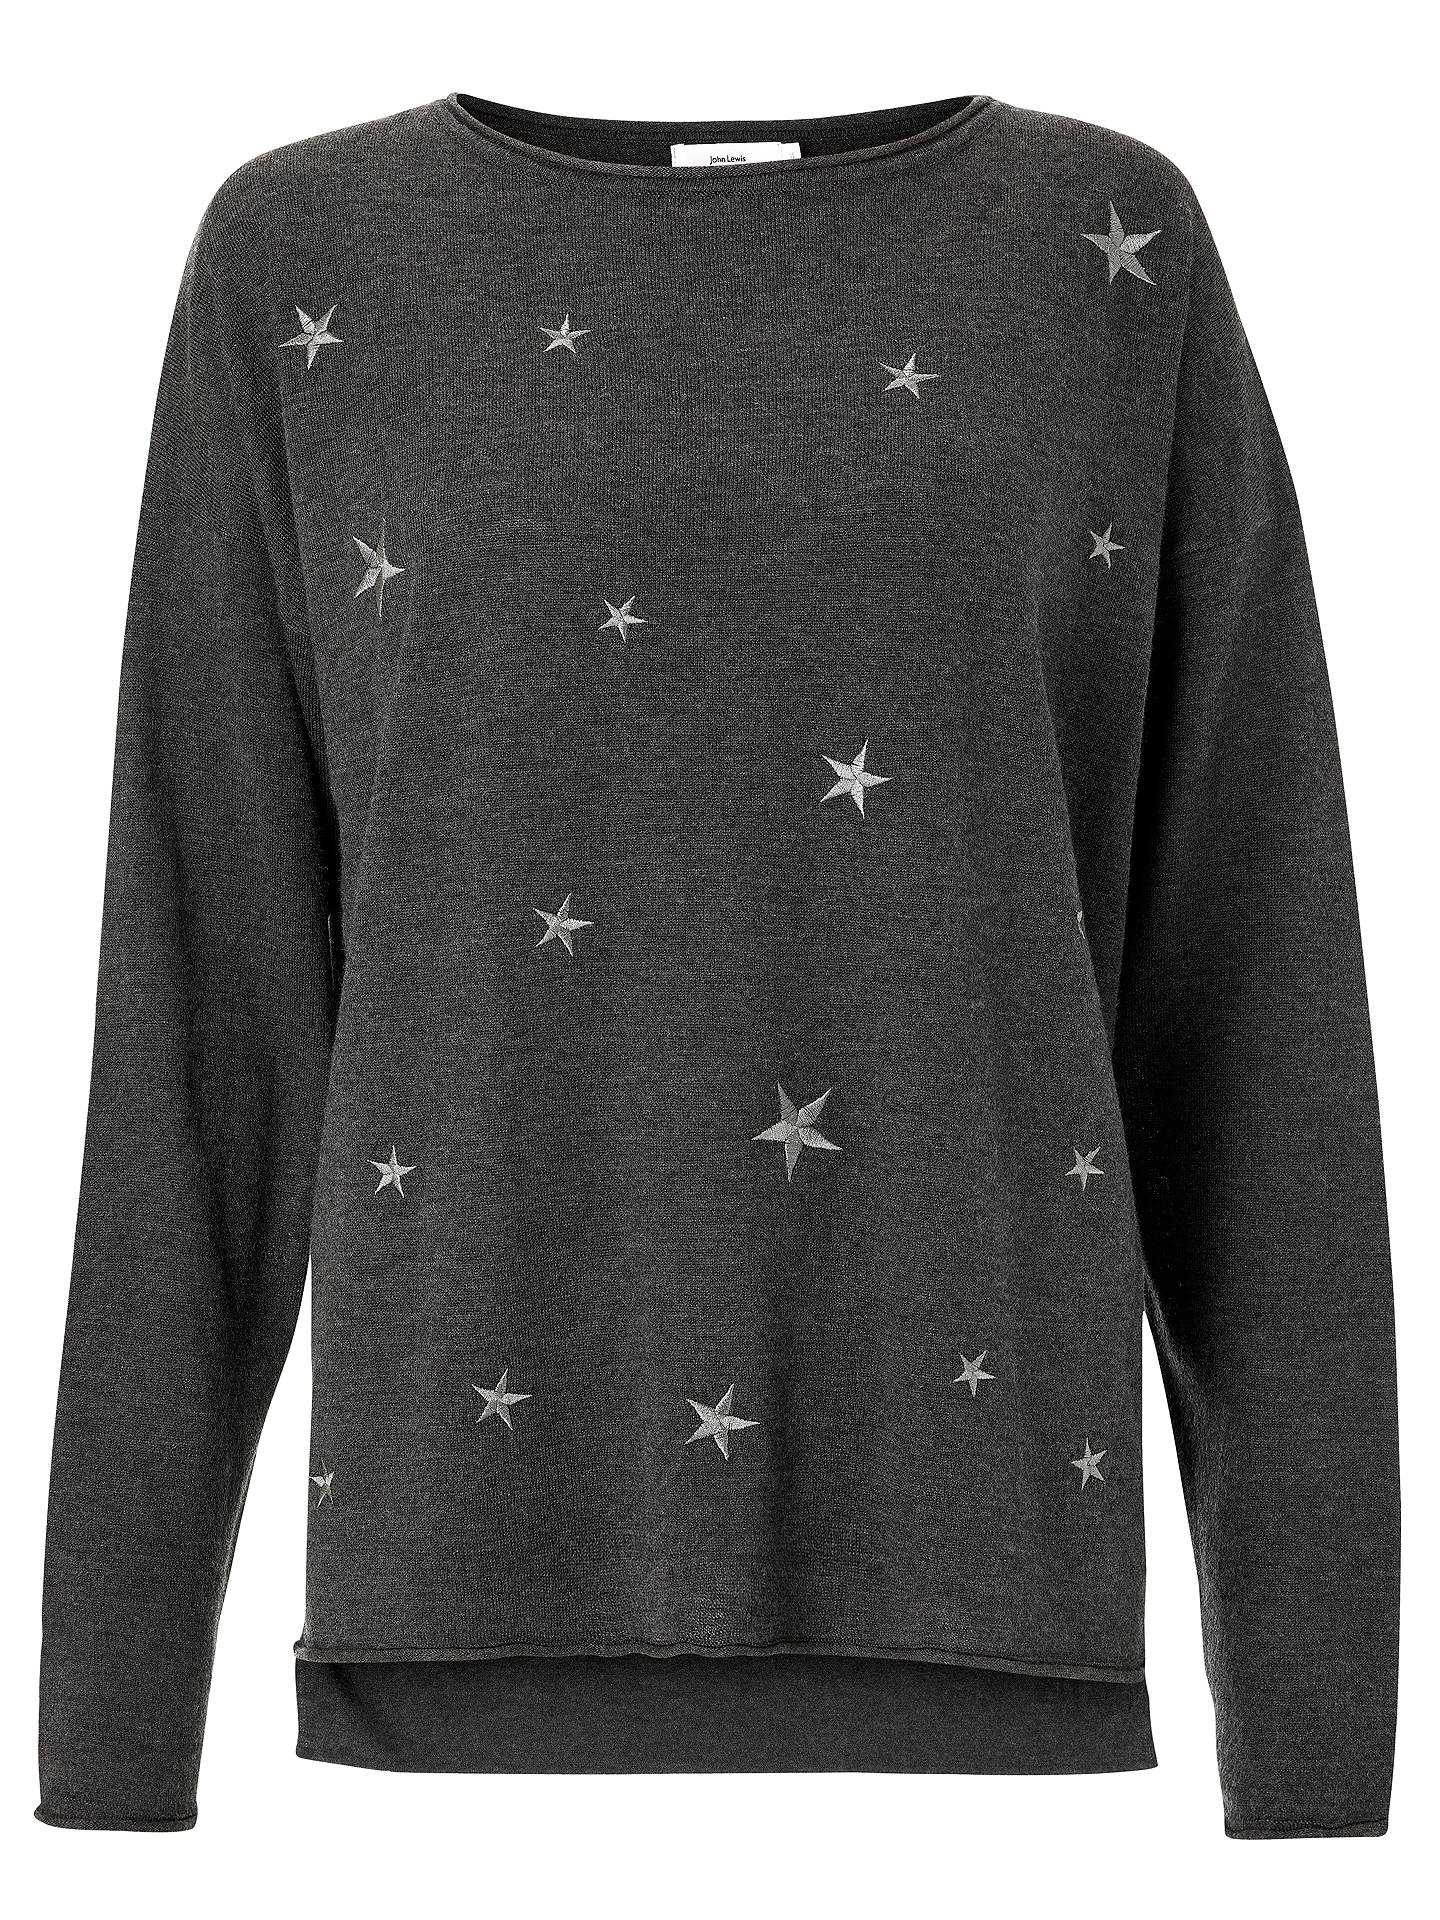 BuyJohn Lewis & Partners Star Embroidered Lounge Top, Grey, S Online at johnlewis.com